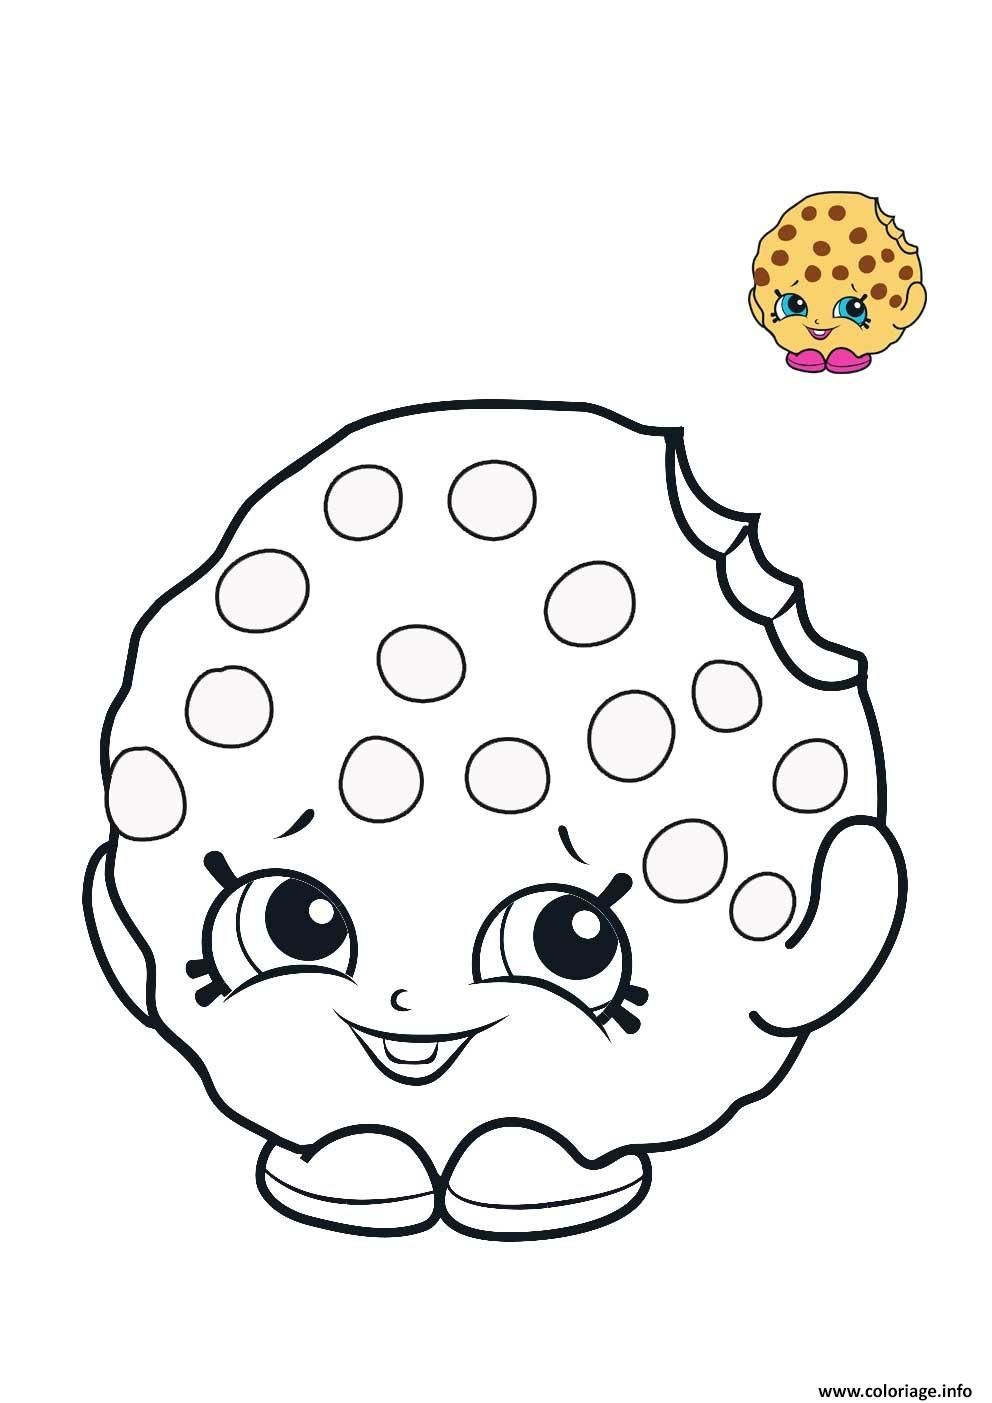 Coloriage Shopkins Cookie Biscuit A Imprimer Con Imagenes